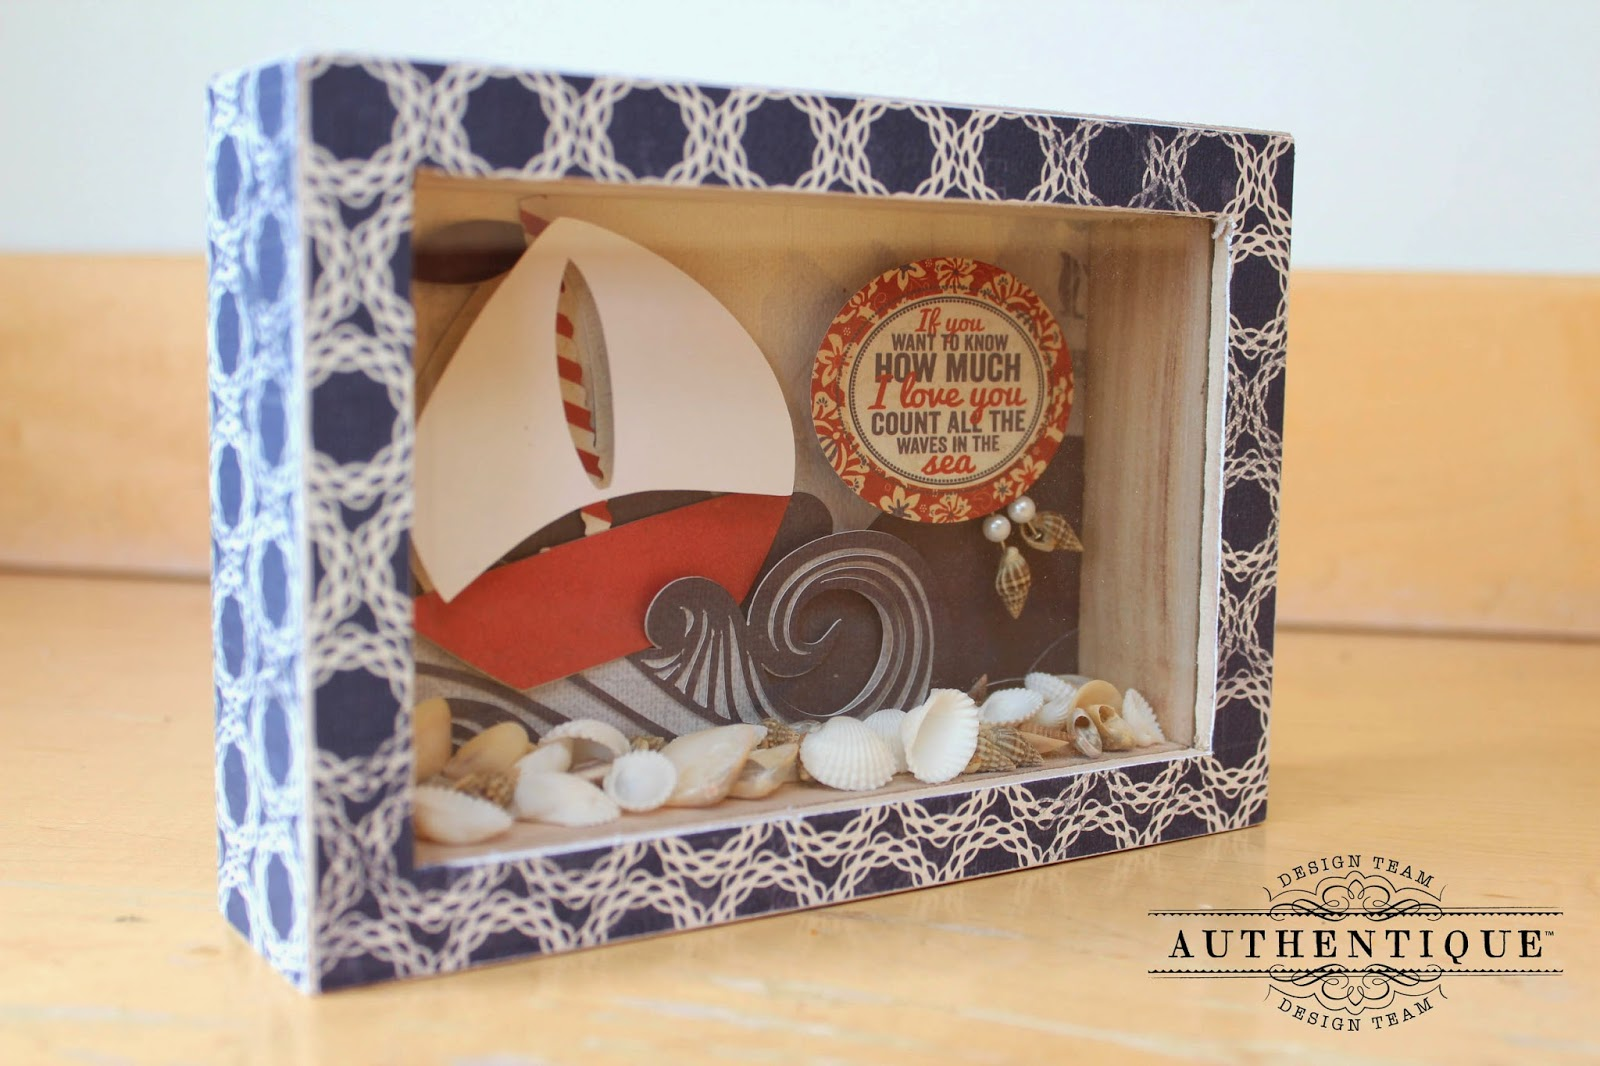 http://blog.authentiquepaper.com/2014/04/stay-anchored-with-authentique-paper.html